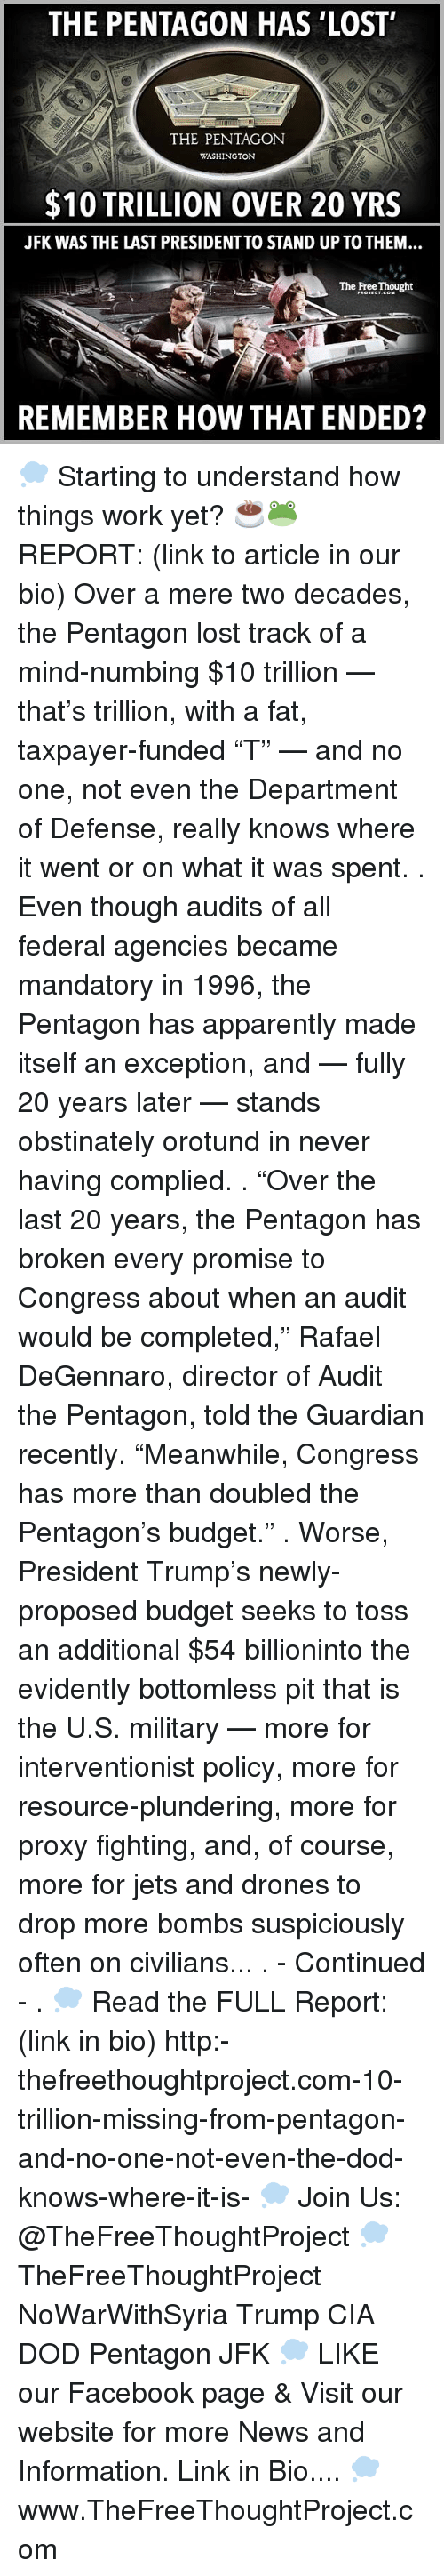 """Apparently, Facebook, and Memes: THE PENTAGON HAS LOST'  THE PENTAGON  WASHINGTON  $10 TRILLION OVER 20 YRS  JFK WAS THE LAST PRESIDENTTO STAND UP TO THEM  The Free Thought  REMEMBER HOW THAT ENDED? 💭 Starting to understand how things work yet? ☕️🐸 REPORT: (link to article in our bio) Over a mere two decades, the Pentagon lost track of a mind-numbing $10 trillion — that's trillion, with a fat, taxpayer-funded """"T"""" — and no one, not even the Department of Defense, really knows where it went or on what it was spent. . Even though audits of all federal agencies became mandatory in 1996, the Pentagon has apparently made itself an exception, and — fully 20 years later — stands obstinately orotund in never having complied. . """"Over the last 20 years, the Pentagon has broken every promise to Congress about when an audit would be completed,"""" Rafael DeGennaro, director of Audit the Pentagon, told the Guardian recently. """"Meanwhile, Congress has more than doubled the Pentagon's budget."""" . Worse, President Trump's newly-proposed budget seeks to toss an additional $54 billioninto the evidently bottomless pit that is the U.S. military — more for interventionist policy, more for resource-plundering, more for proxy fighting, and, of course, more for jets and drones to drop more bombs suspiciously often on civilians... . - Continued - . 💭 Read the FULL Report: (link in bio) http:-thefreethoughtproject.com-10-trillion-missing-from-pentagon-and-no-one-not-even-the-dod-knows-where-it-is- 💭 Join Us: @TheFreeThoughtProject 💭 TheFreeThoughtProject NoWarWithSyria Trump CIA DOD Pentagon JFK 💭 LIKE our Facebook page & Visit our website for more News and Information. Link in Bio.... 💭 www.TheFreeThoughtProject.com"""